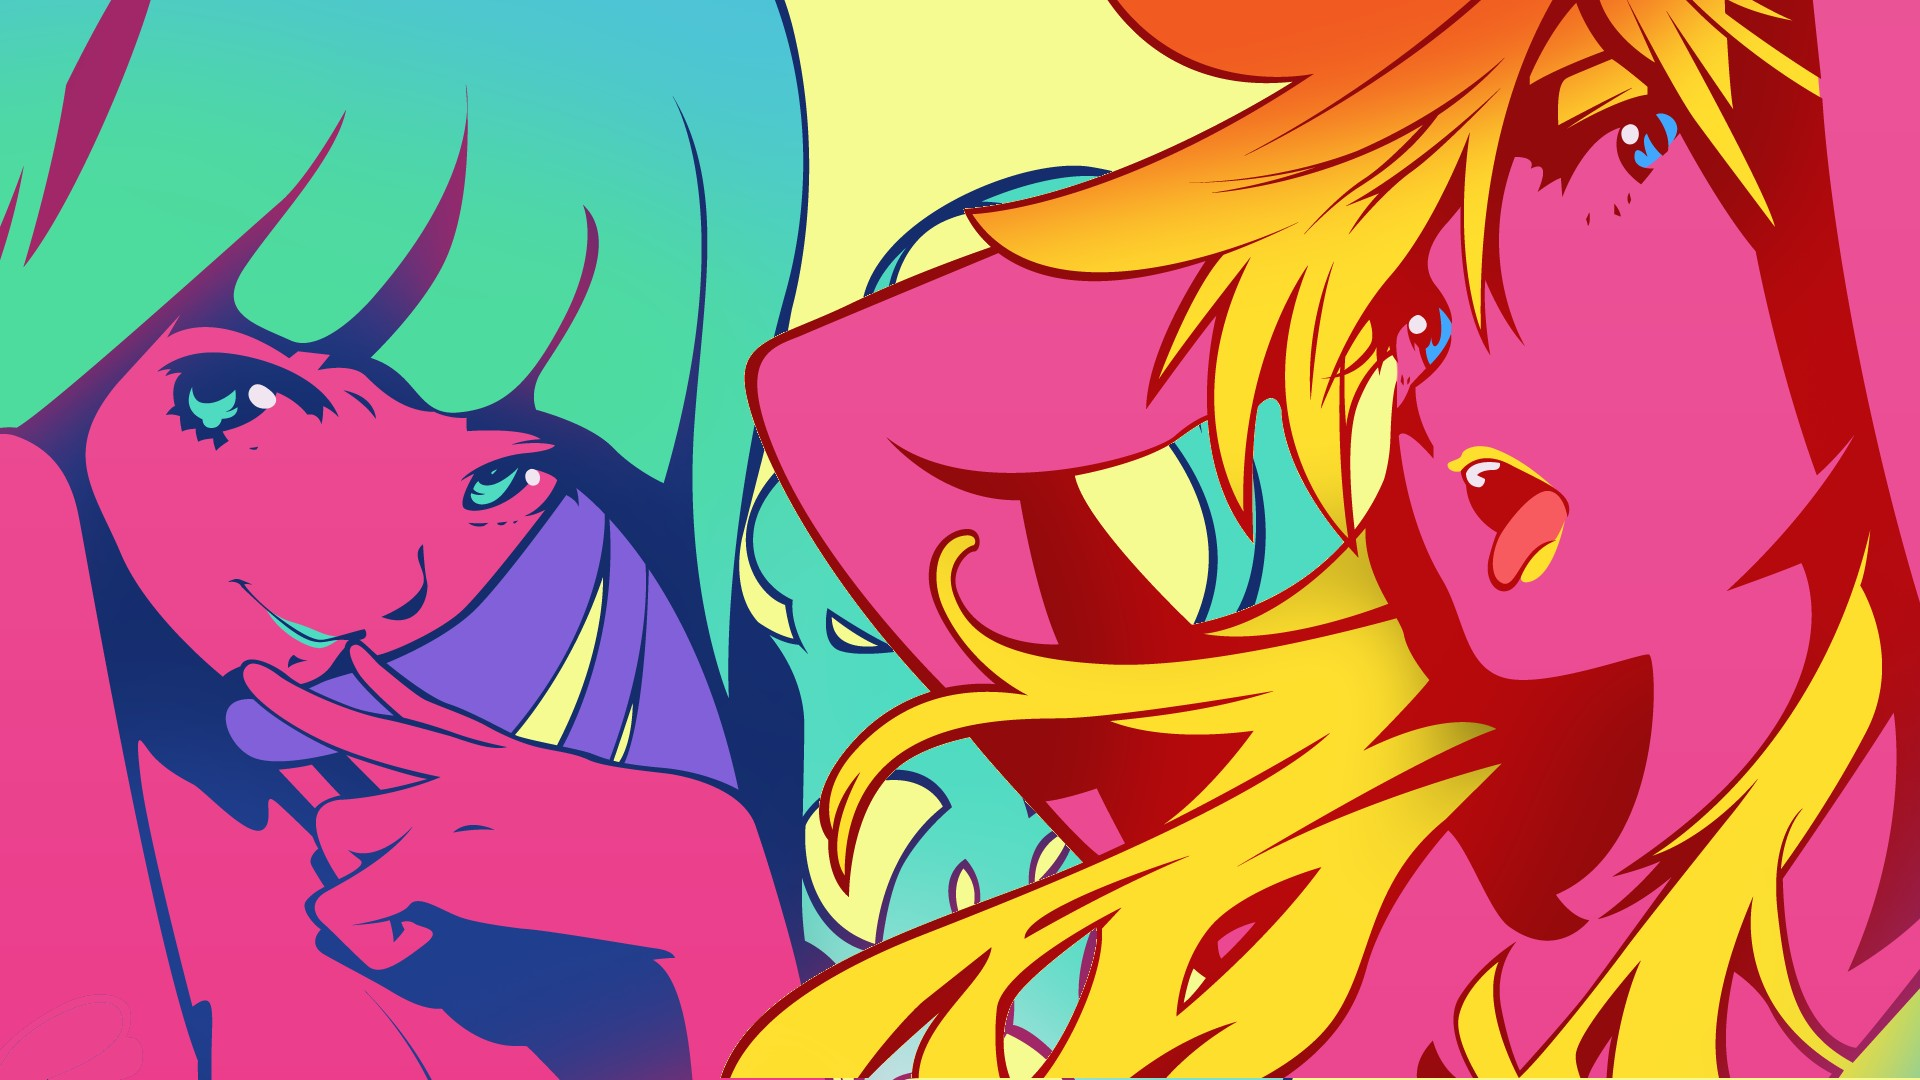 Panty And Stocking Wallpaper Download Free Awesome Wallpapers